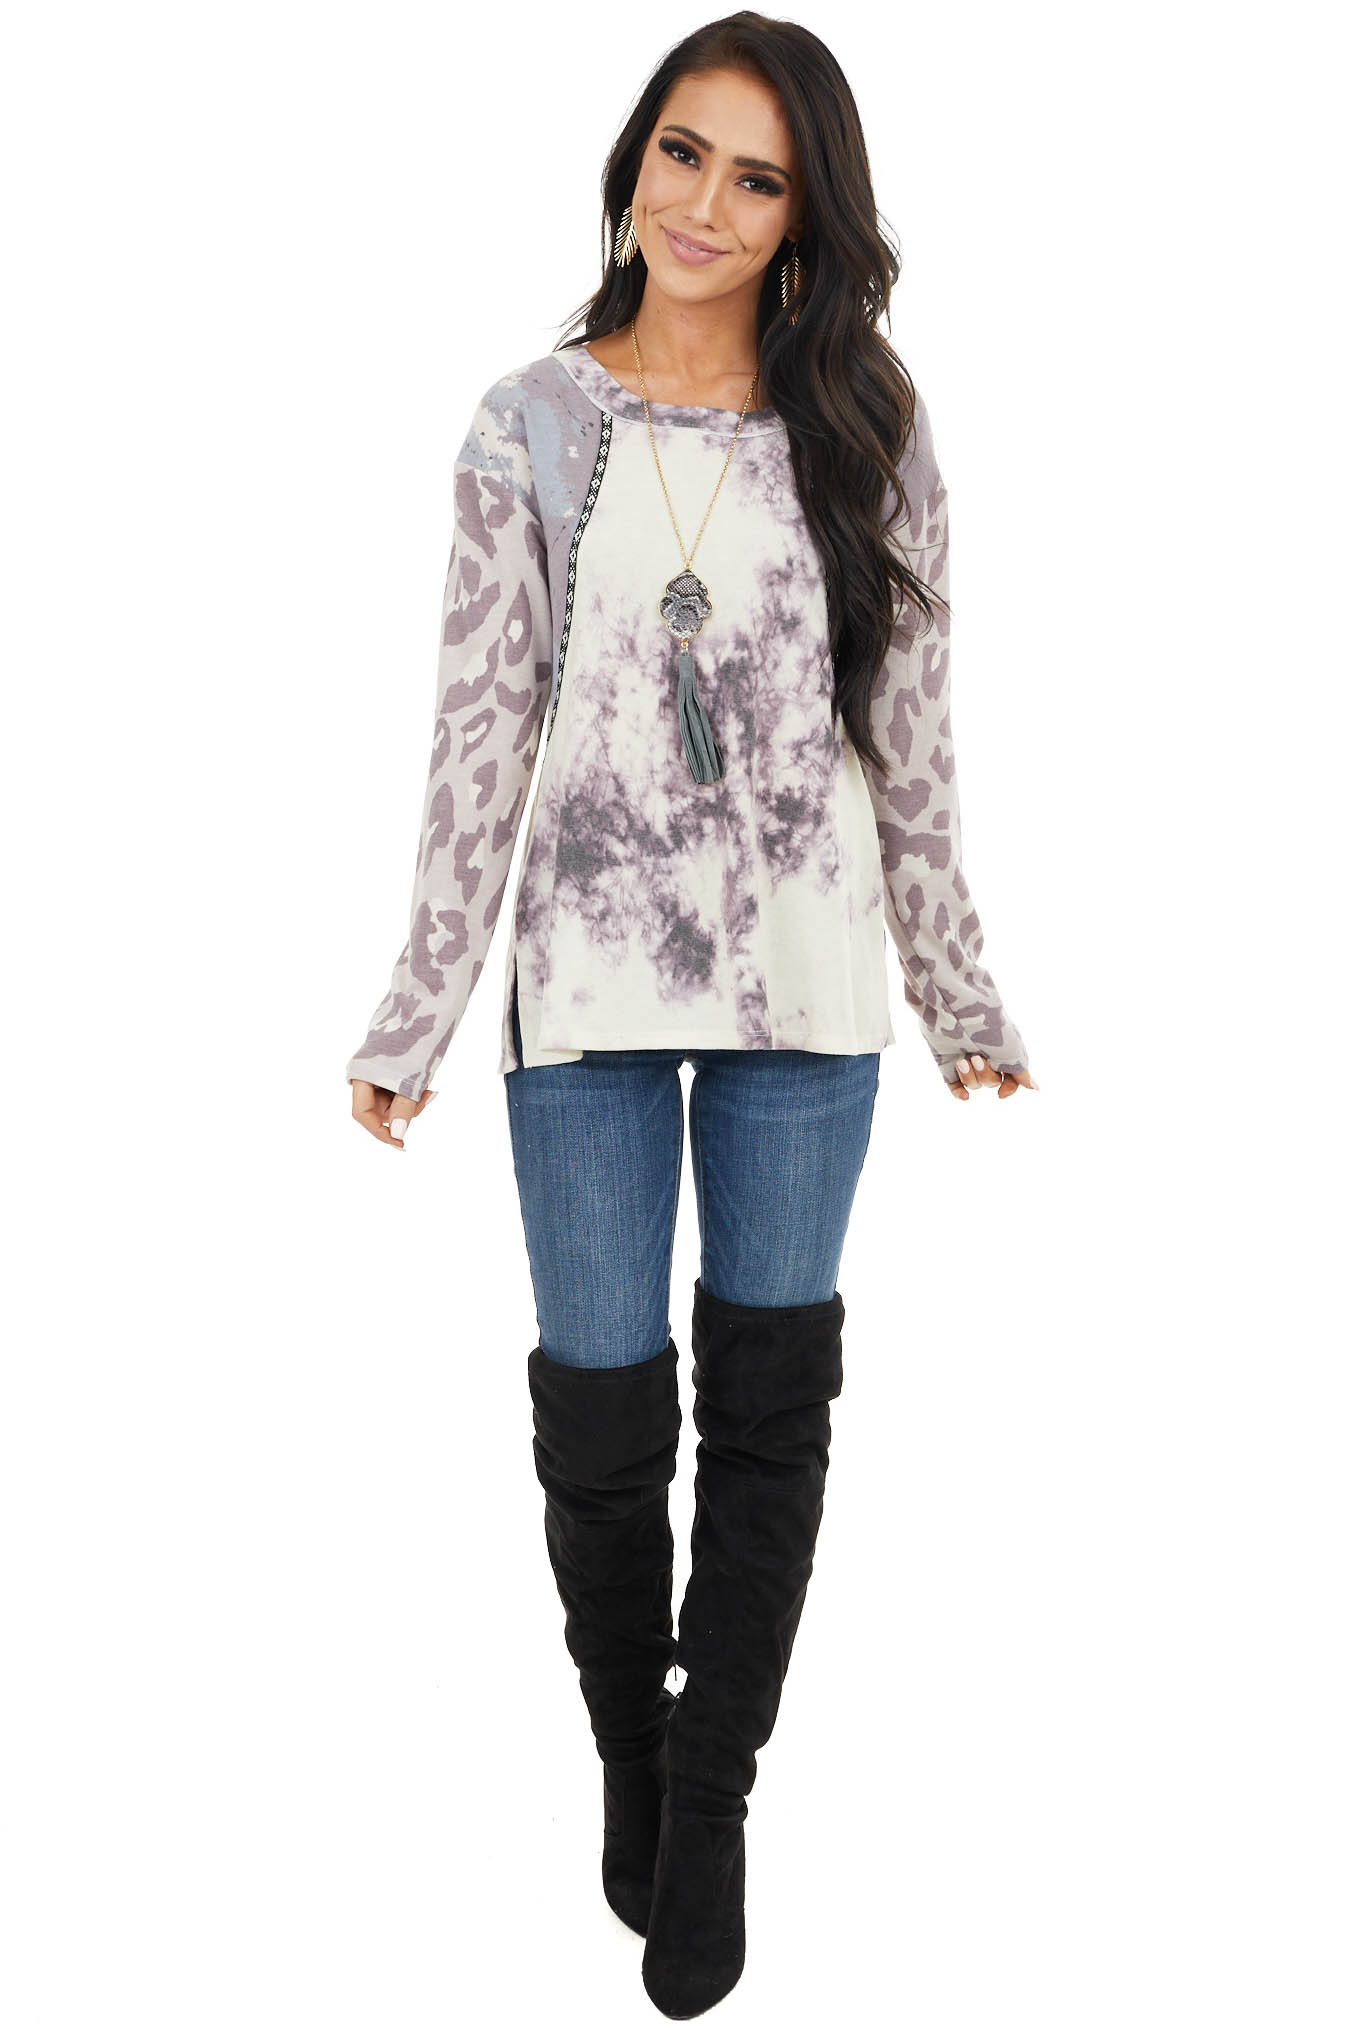 Lavender Multiprint Long Sleeve Top with Rounded Neck